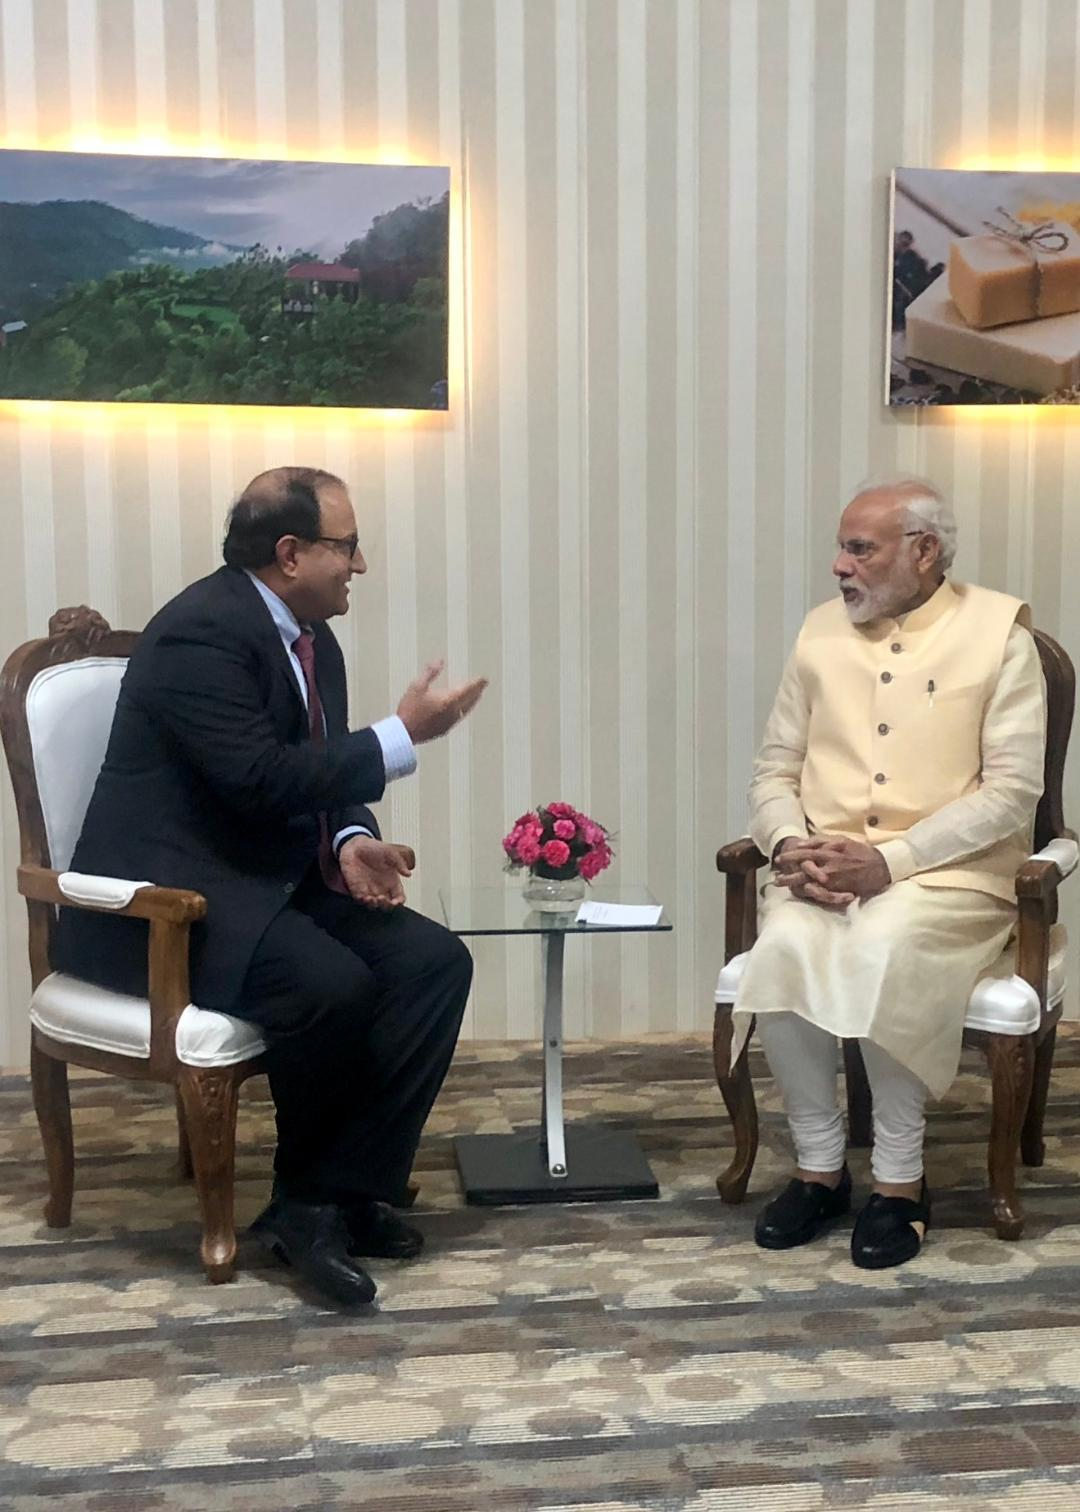 Minister-in-Charge of Trade Relations S Iswaran (left) met Indian Prime Minister Narendra Modi at Uttrakhand Investors Summit and discussed ways to enhance air connectivity. Photo courtesy: Ministry of Trade and Industry, Singapore